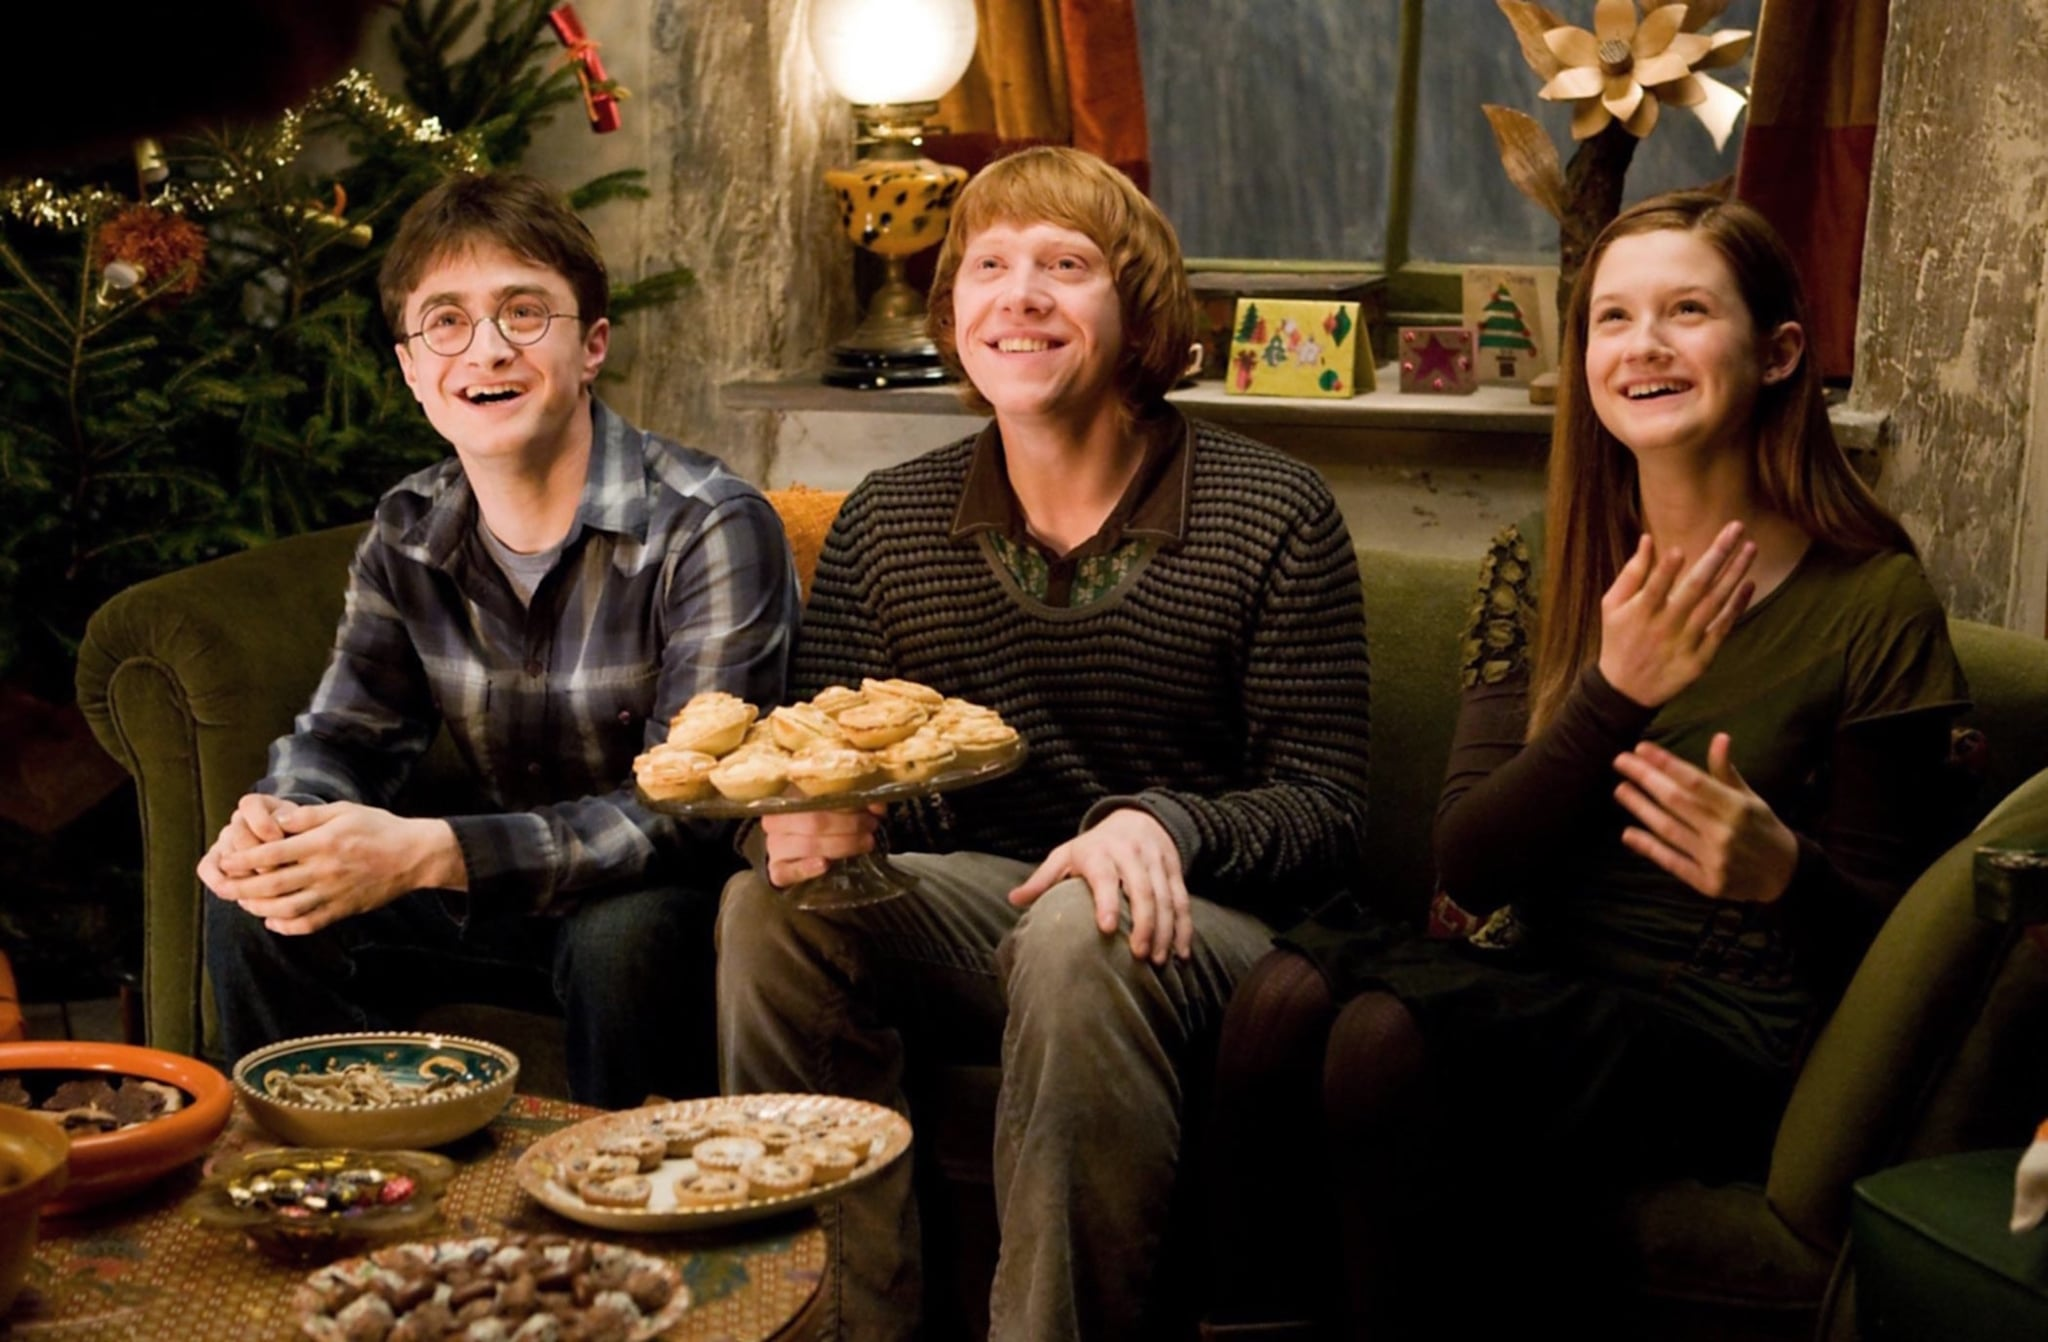 Reading Harry Potter Makes You a Better Person, and Science Proves It